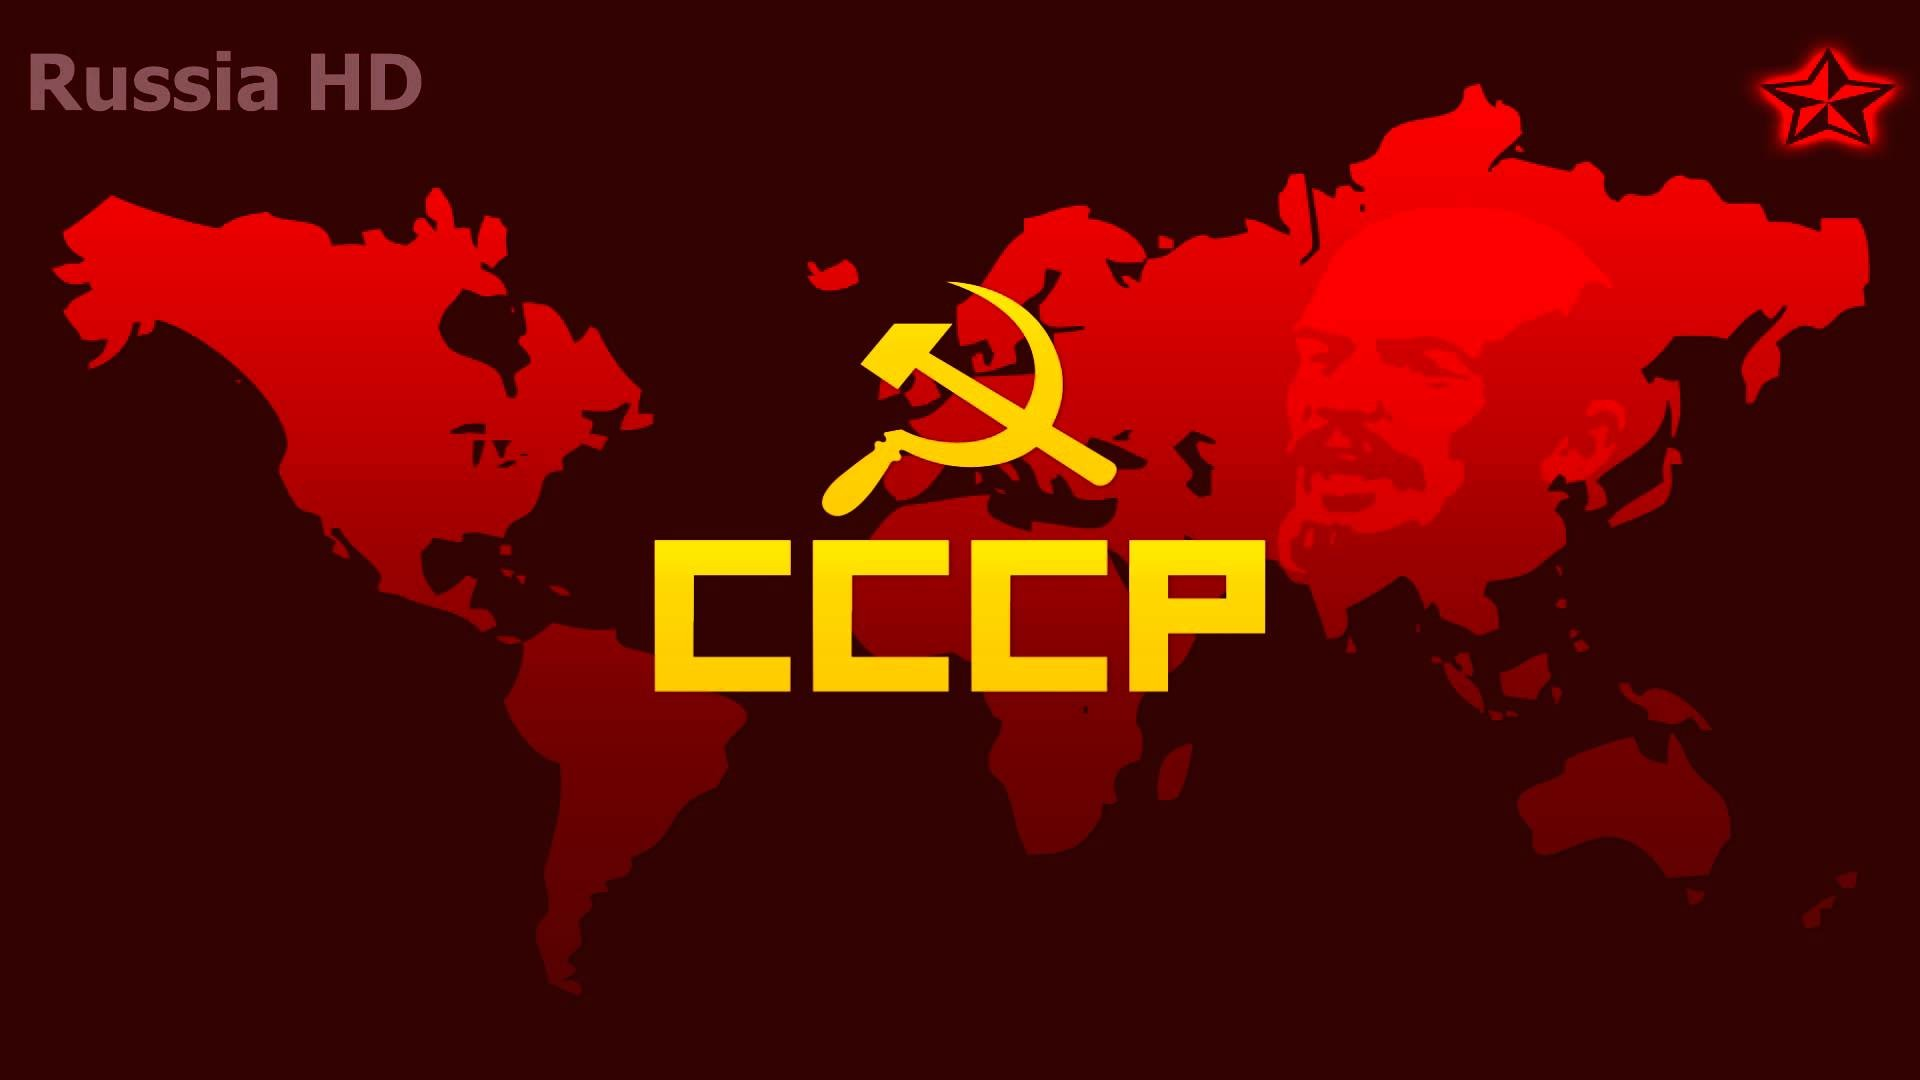 Cool Live Wallpapers For Iphone X Soviet Union Wallpaper 70 Images